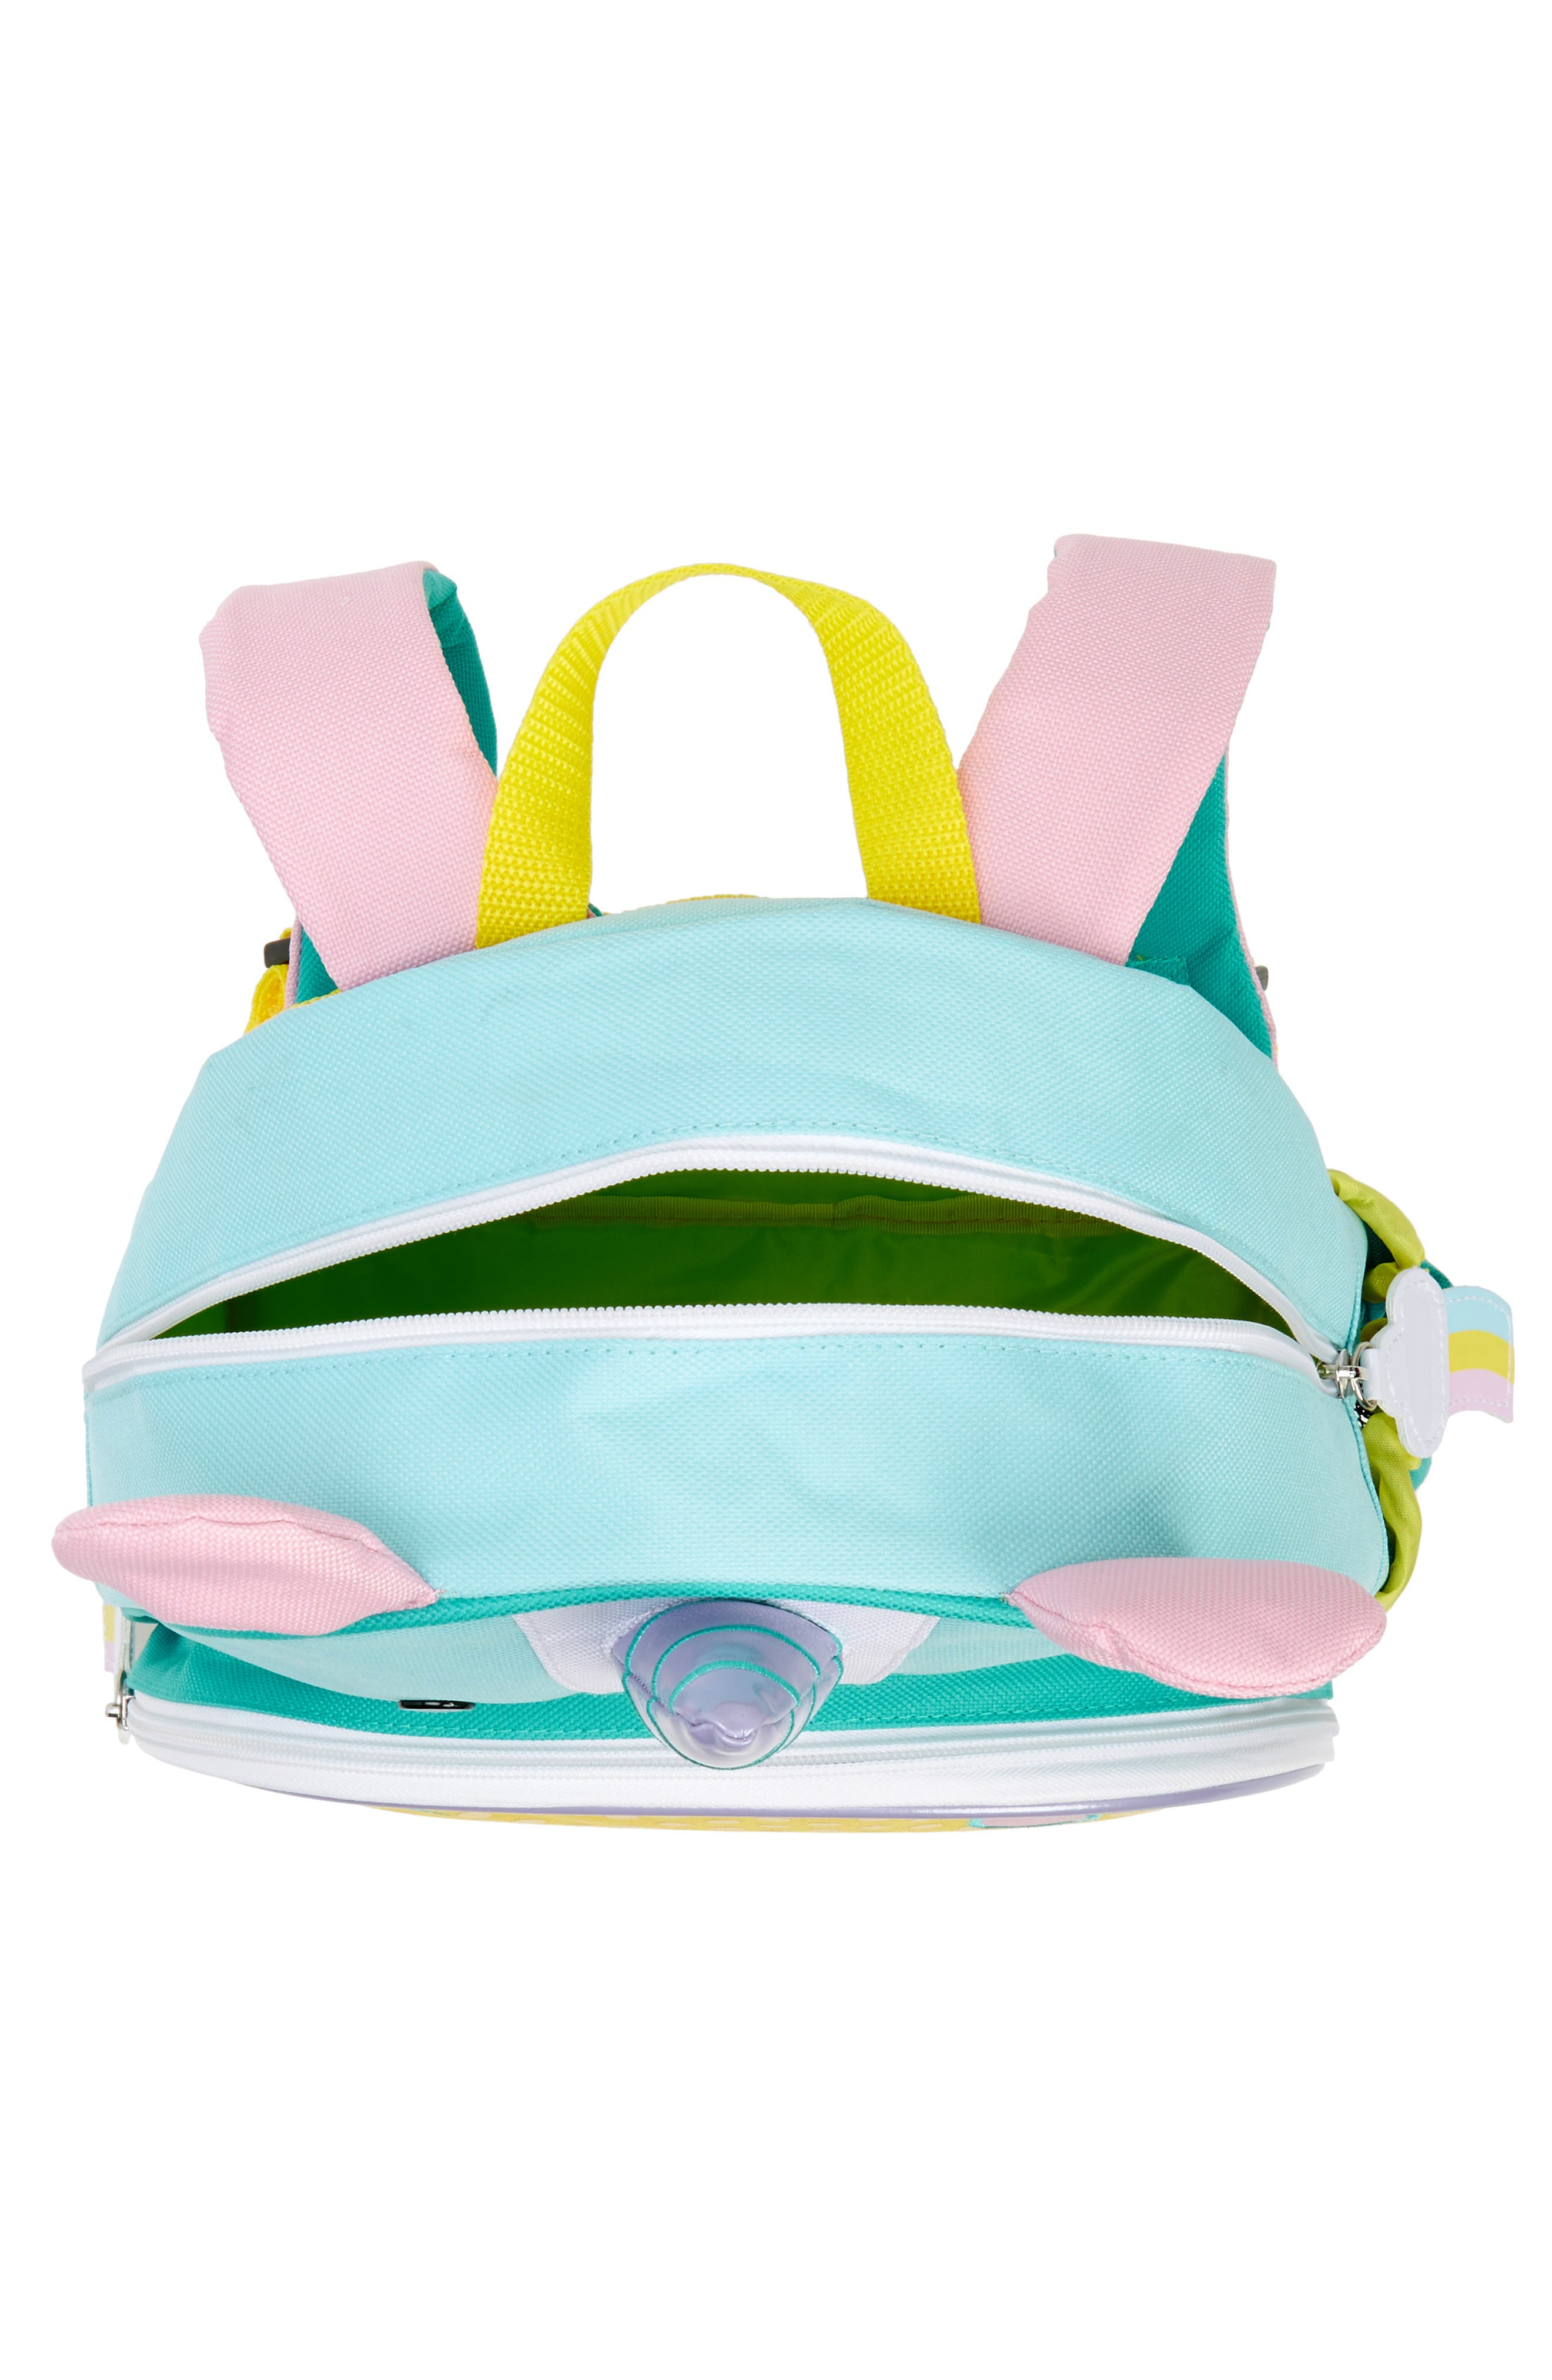 Zoo Pack Backpack,                             Alternate thumbnail 4, color,                             YELLOW